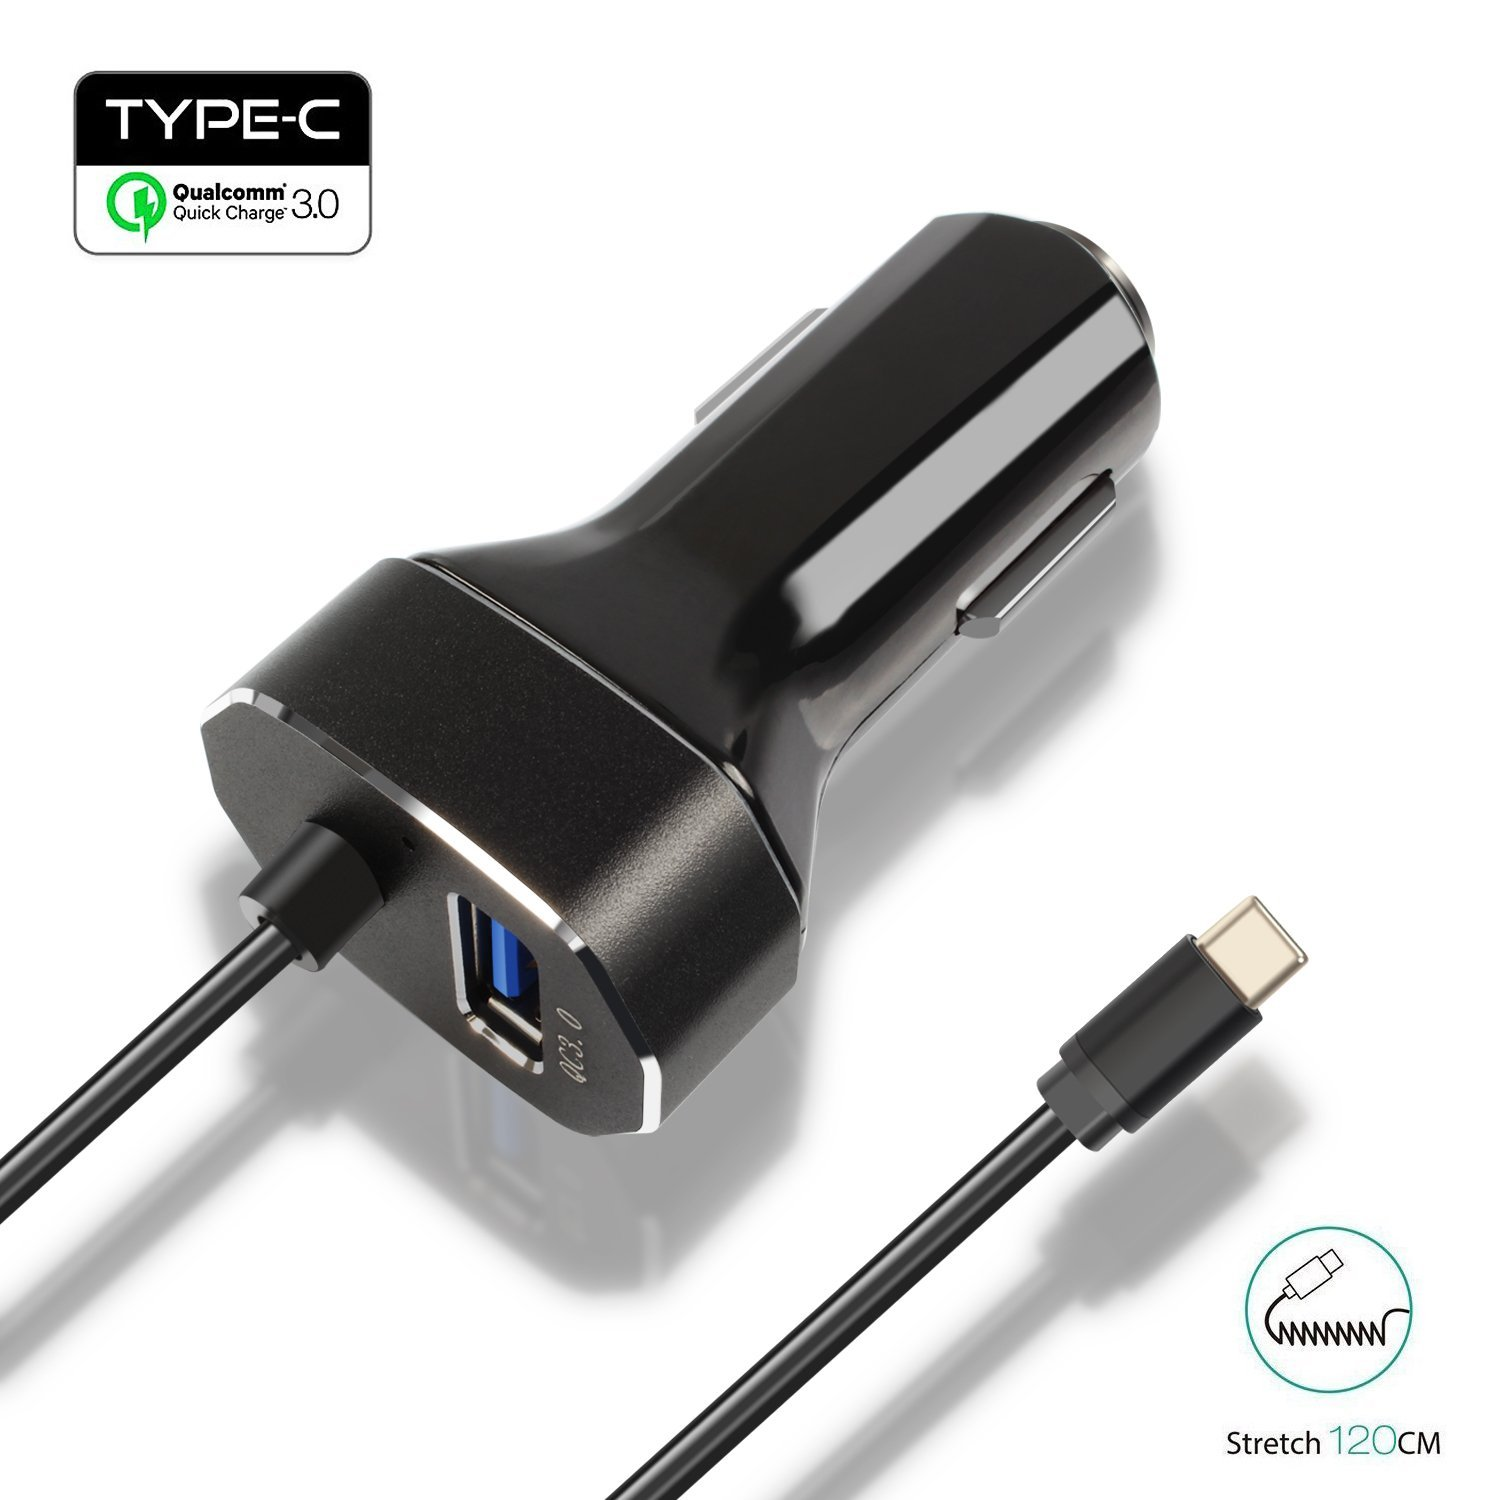 """30W 2 Ports USB Type C Car Charger,[USB QC 3.0 Port + Built-in Type-C USB C Adapter Charging Cable] for Samsung,Google Pixel XL,Nexus 5X 6P,MacBook 12"""" iPhone,Galaxy S7 S6/Note 5,HTC 10 - Black"""